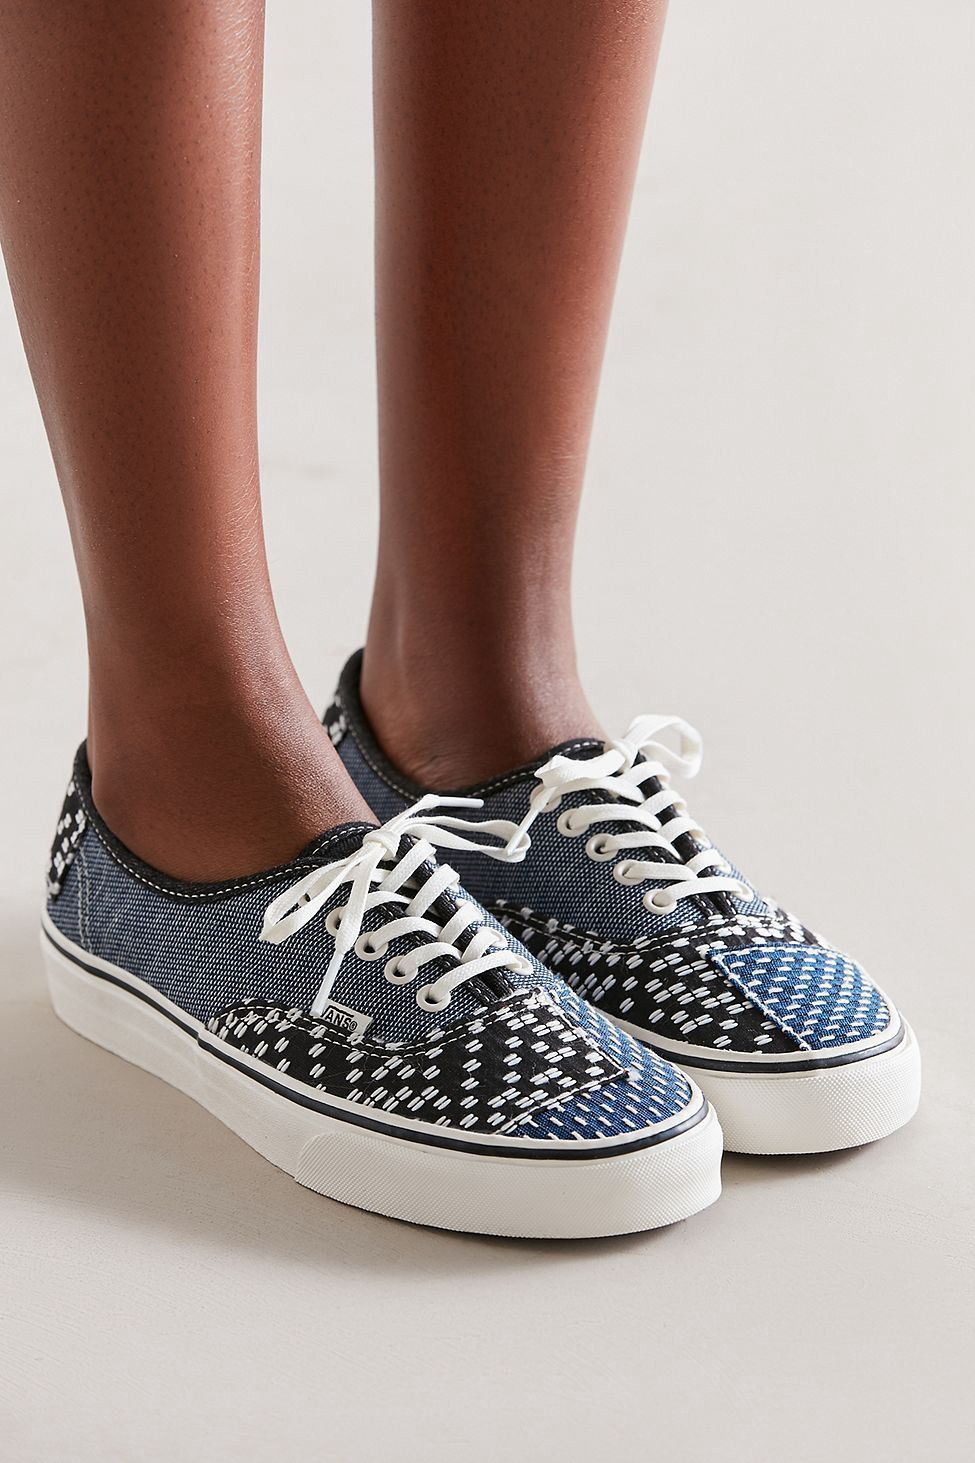 Urban Outfitters Vans Authentic Patchwork Denim Sneaker - W 9.5 M 8 ... 6ea1420a2fa